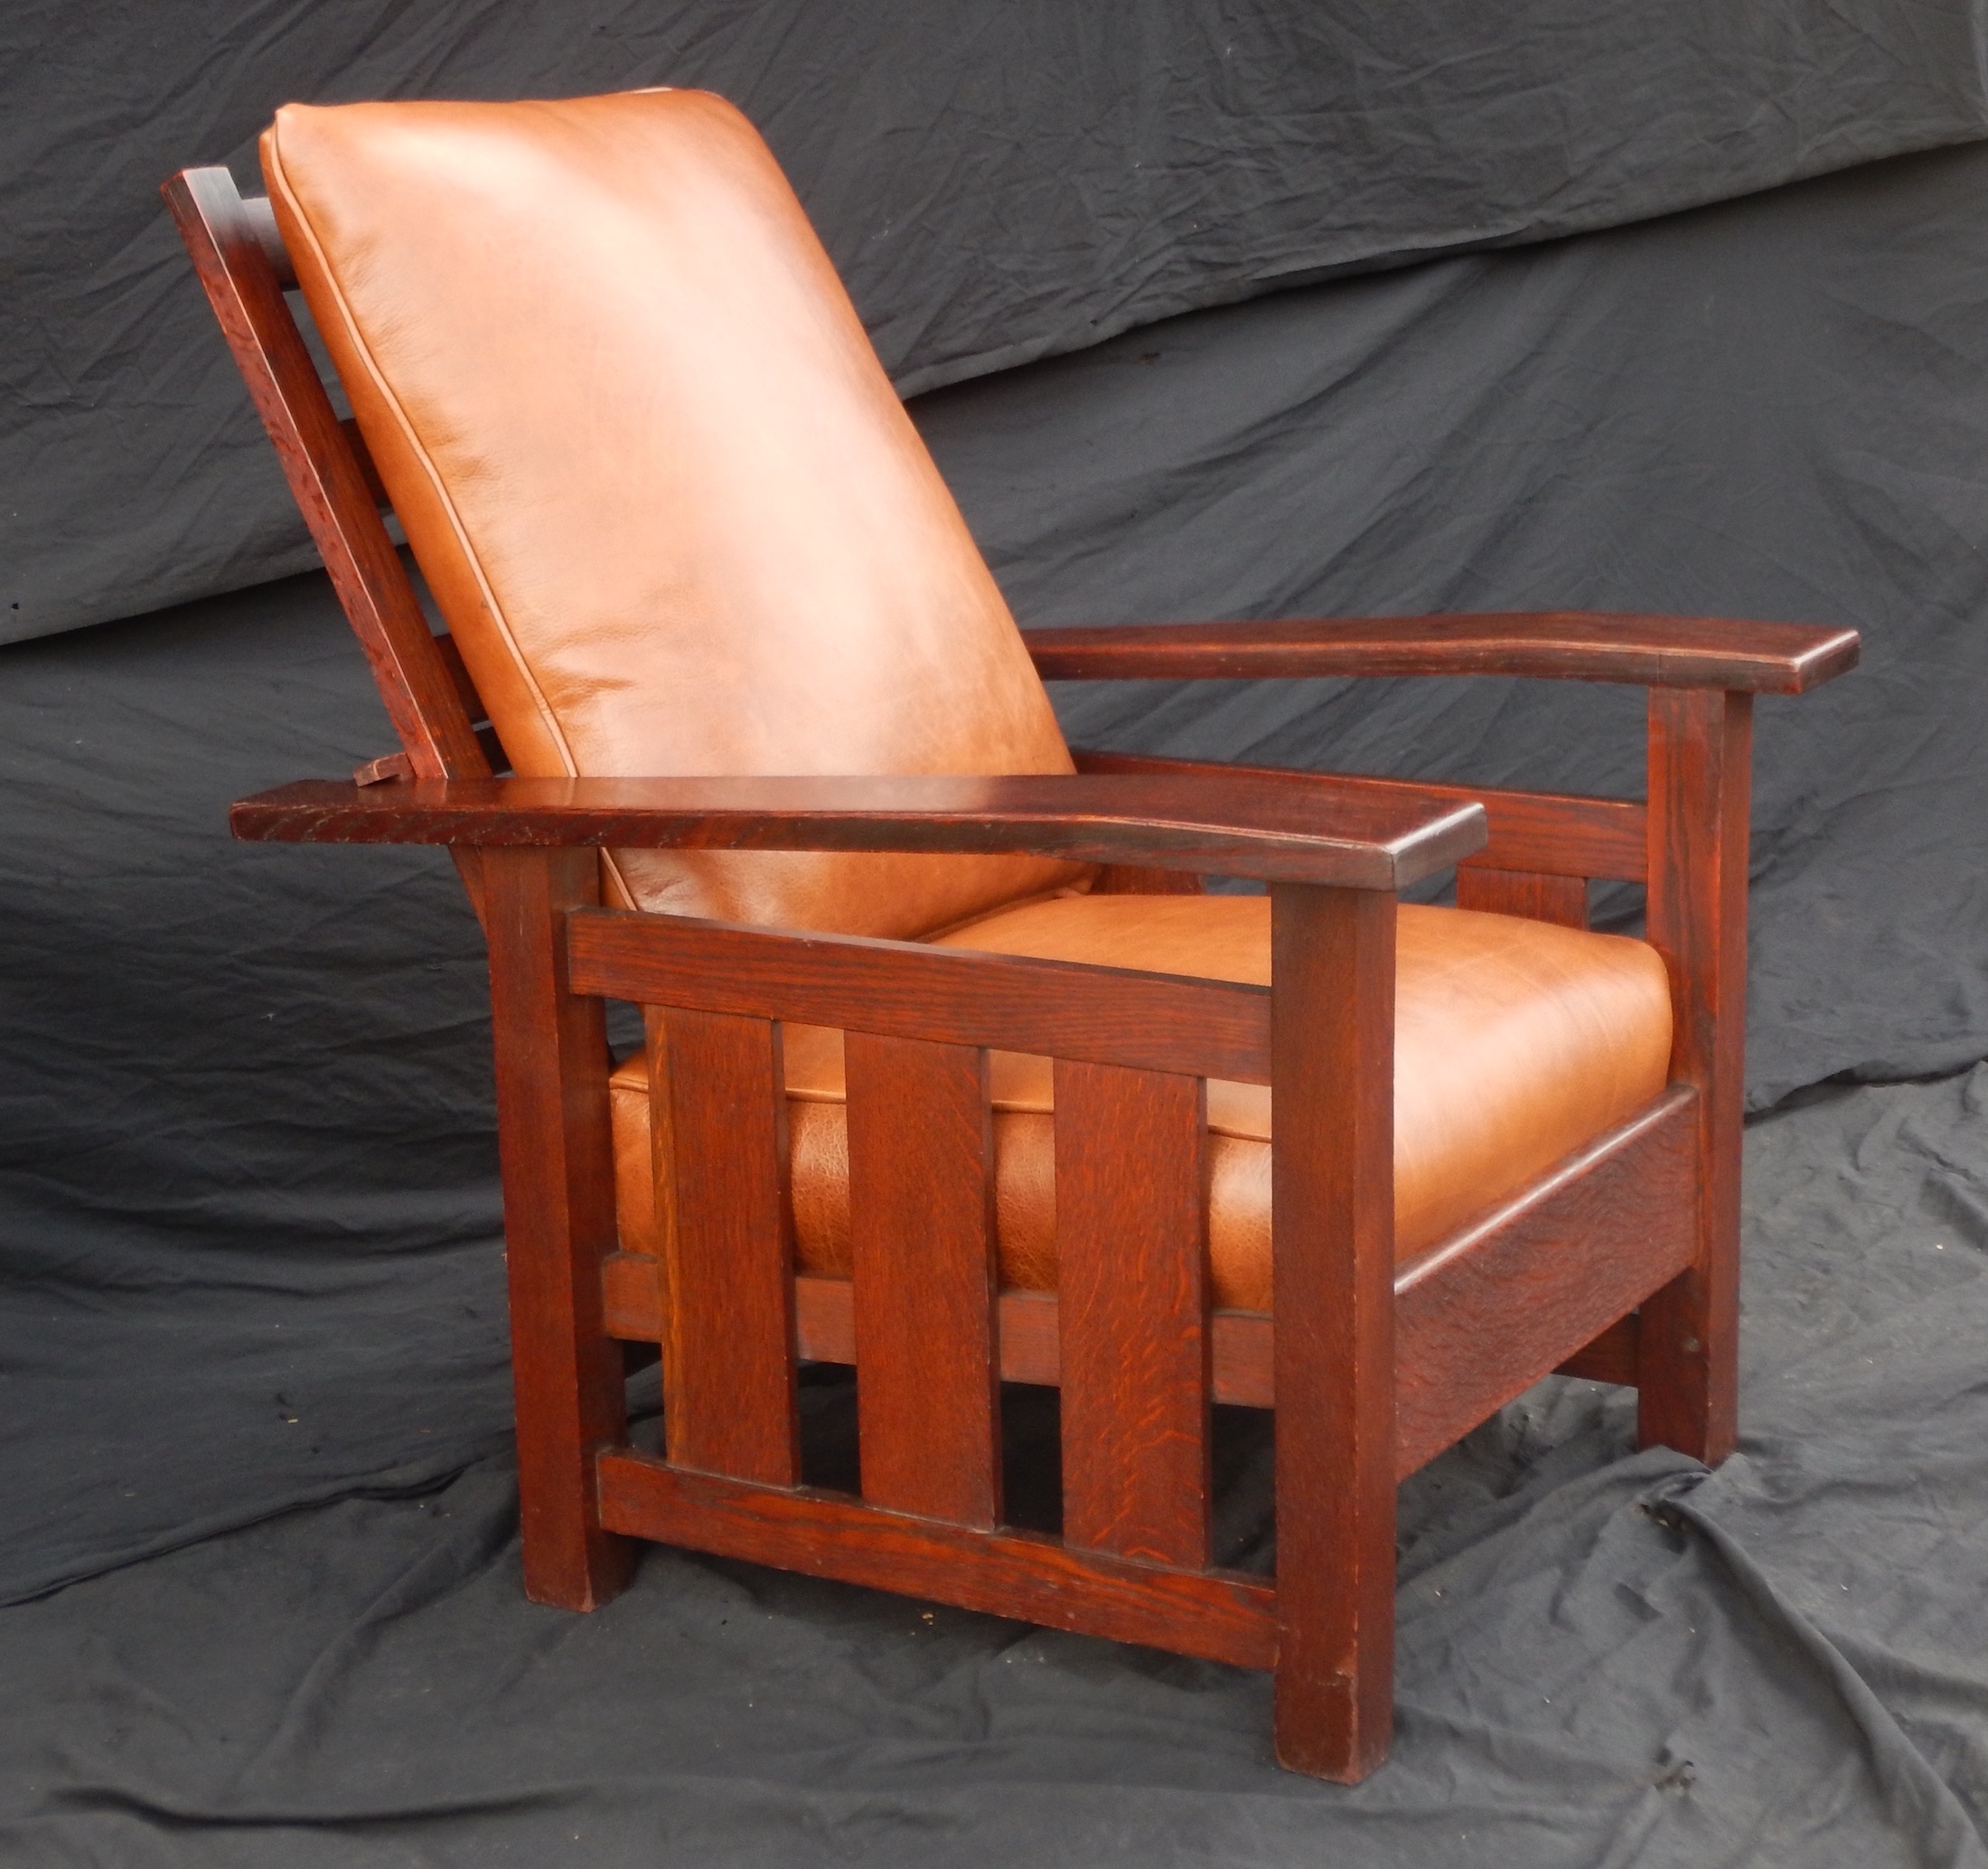 Antique stickley morris chair - Vintage Stickley Era Arts And Crafts Slant Arm Morris Chair With Slats To The Floor